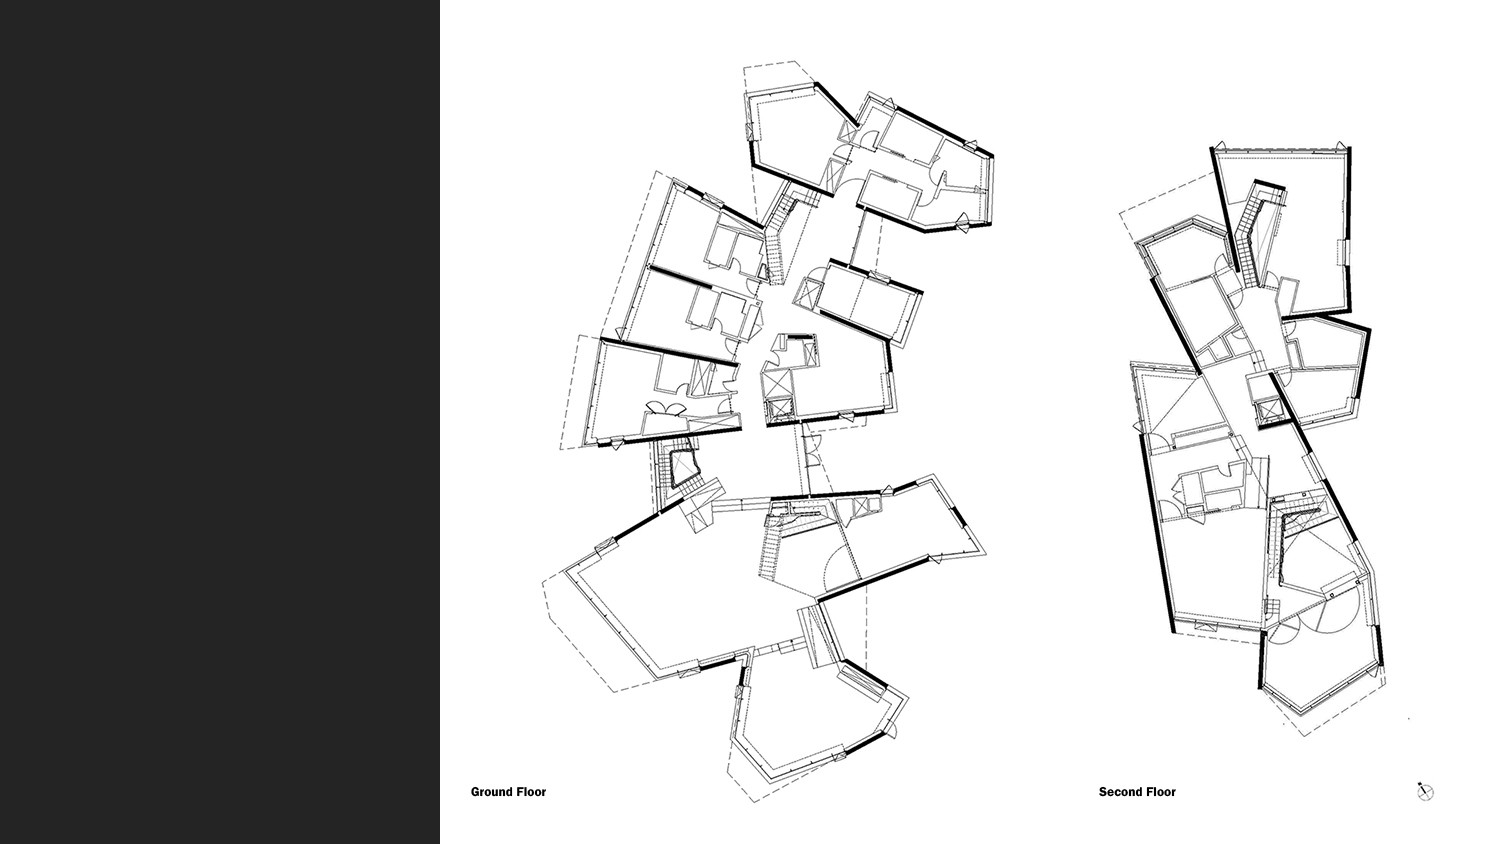 https://s3.us-east-2.amazonaws.com/steven-holl/uploads/projects/project-images/StevenHollArchitects_WPV_Plans_WH.jpg